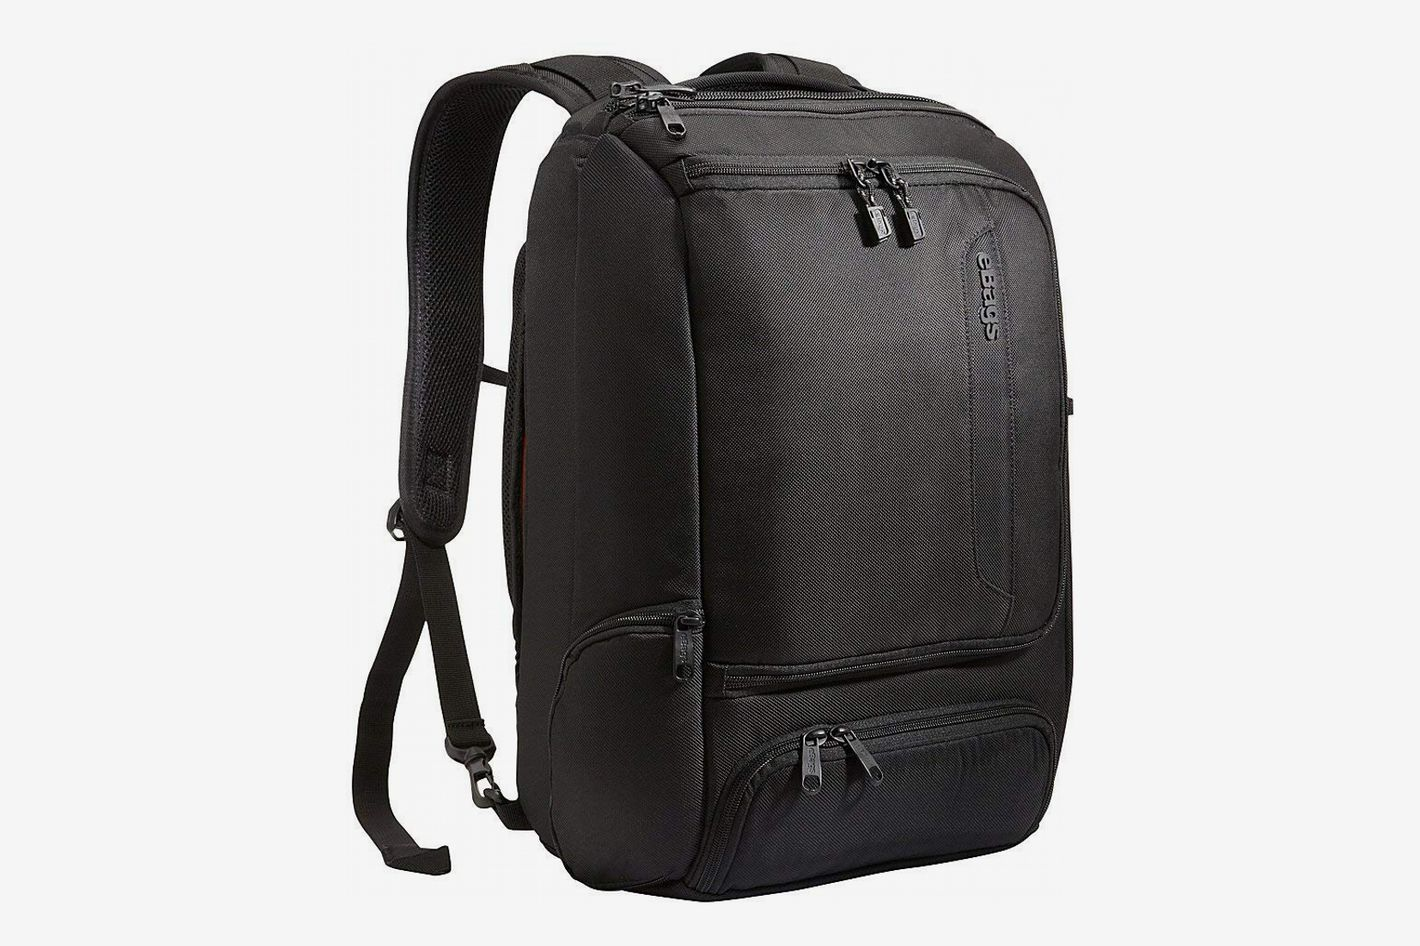 d49f52bf78be The 14 Best Laptop Backpacks on Amazon 2019